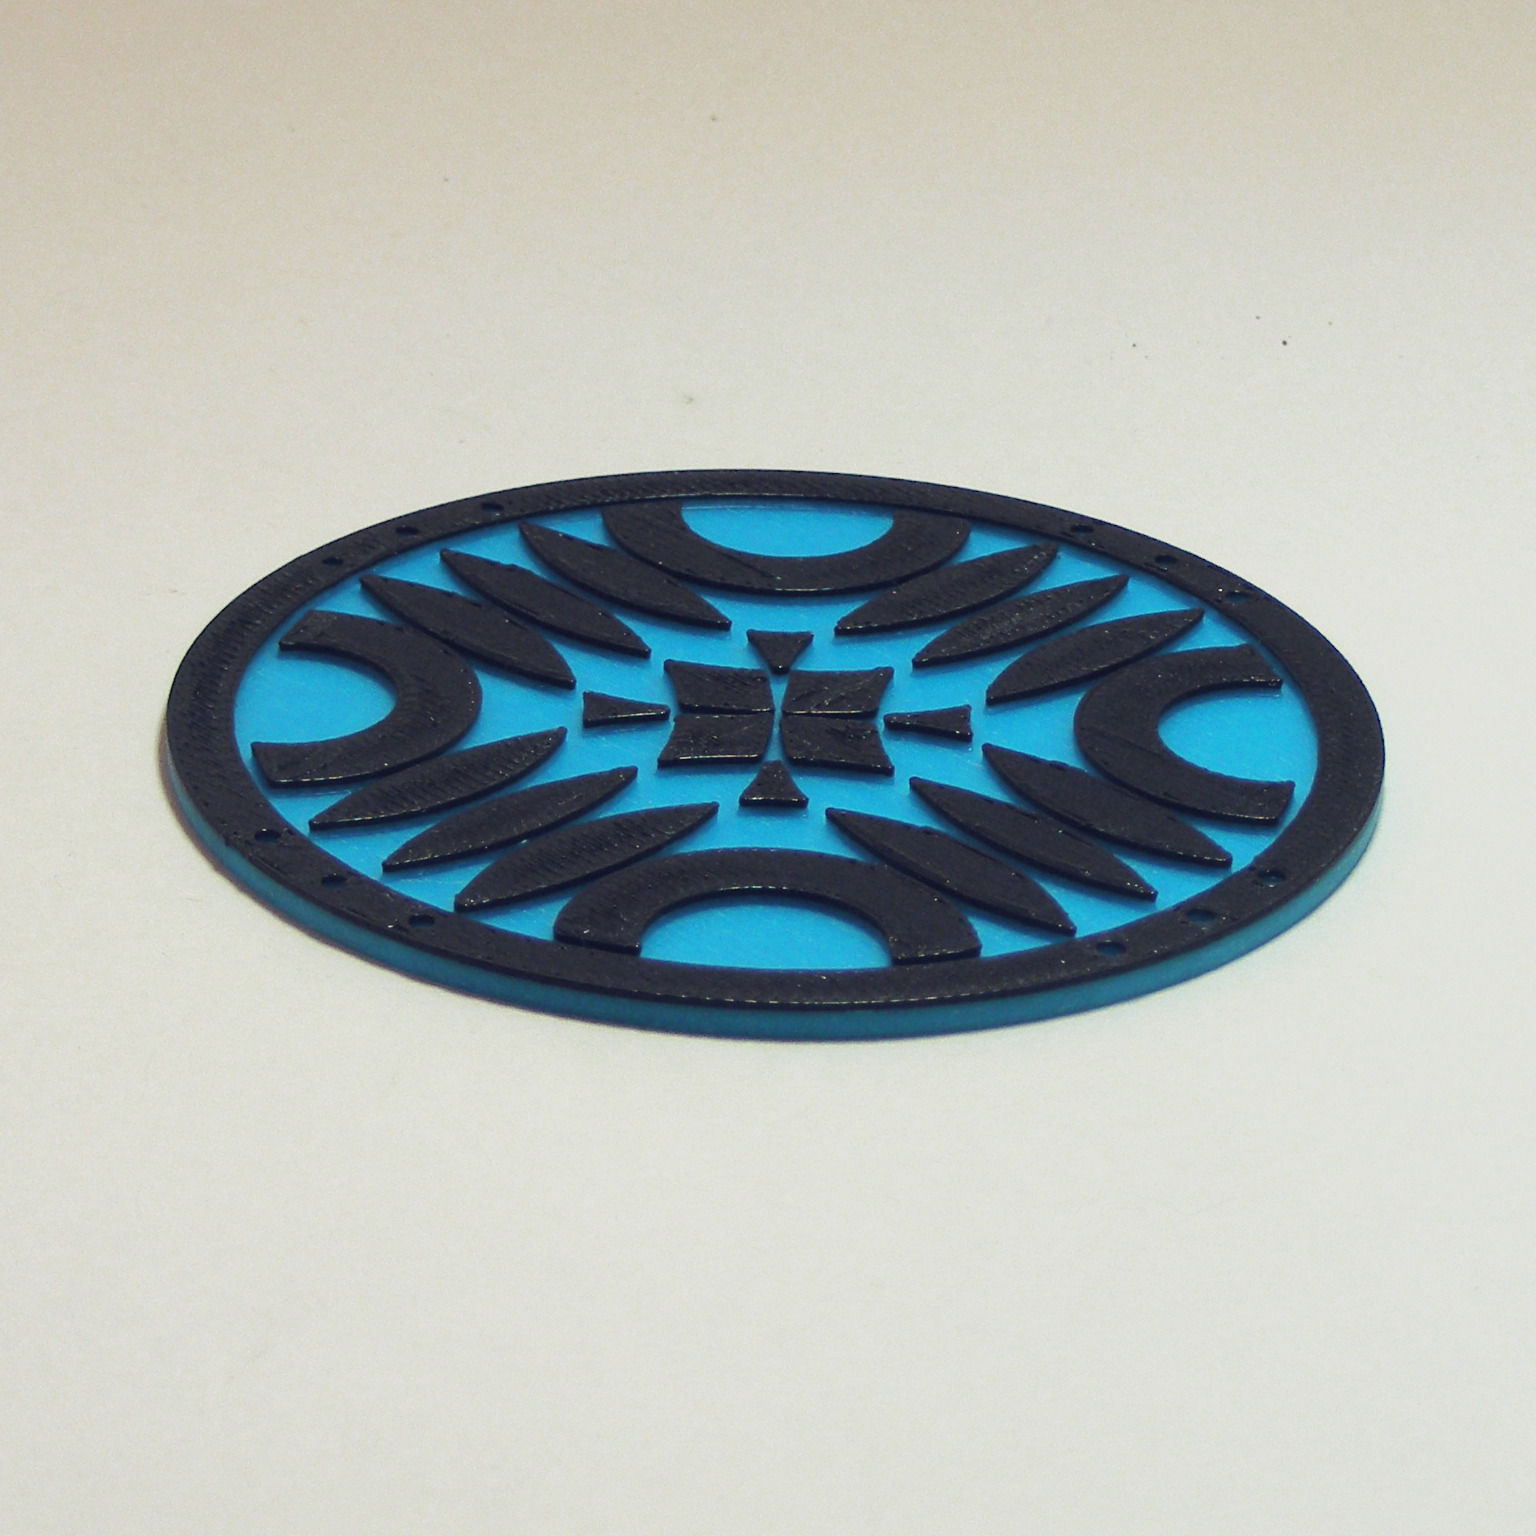 Crop Circle Drink Coaster 3D Model 3D Printable .stl